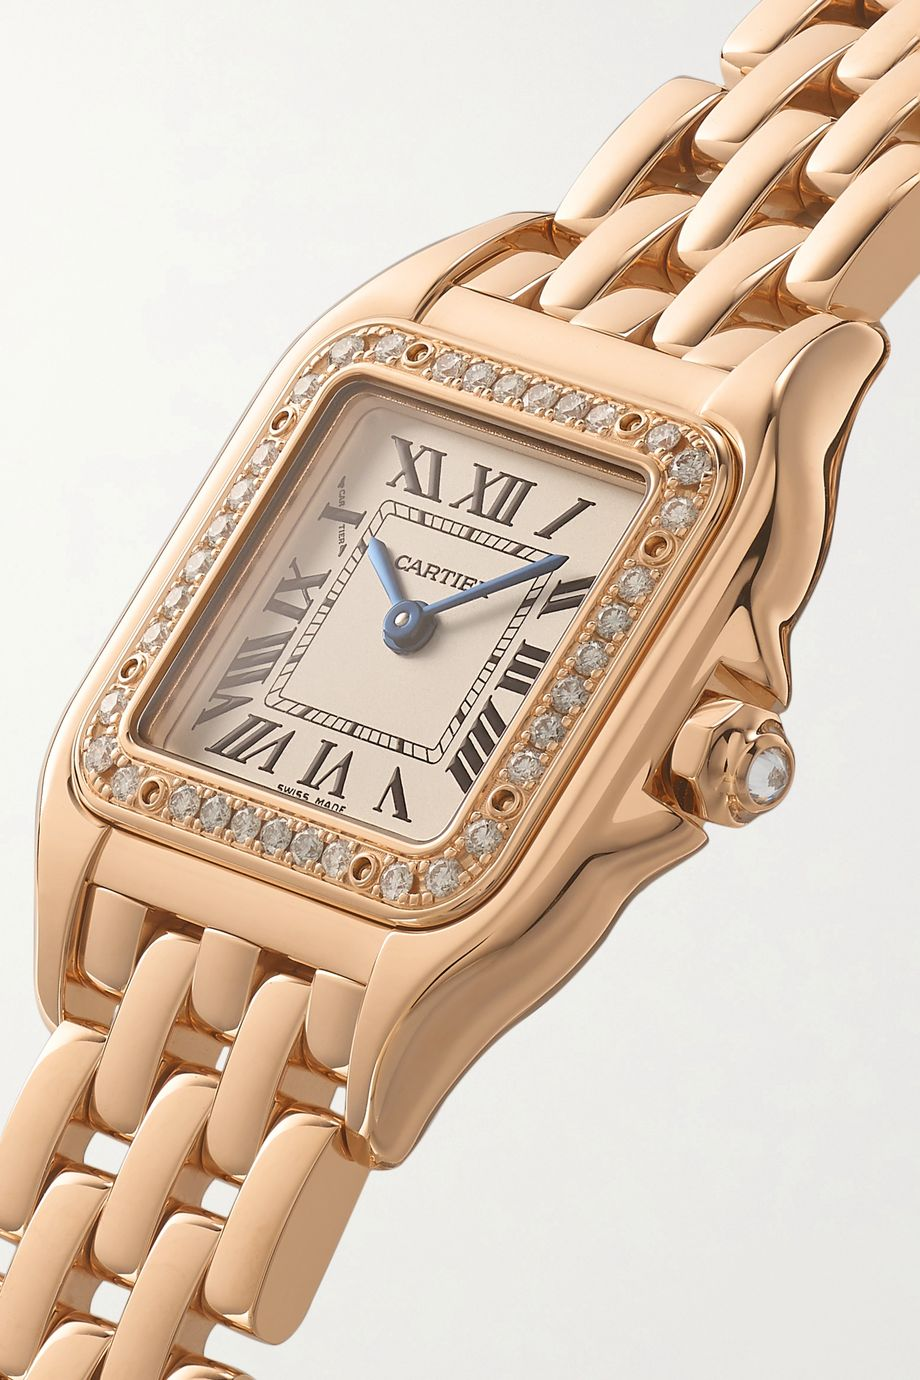 Cartier Panthère de Cartier 22mm small 18-karat pink gold and diamond watch